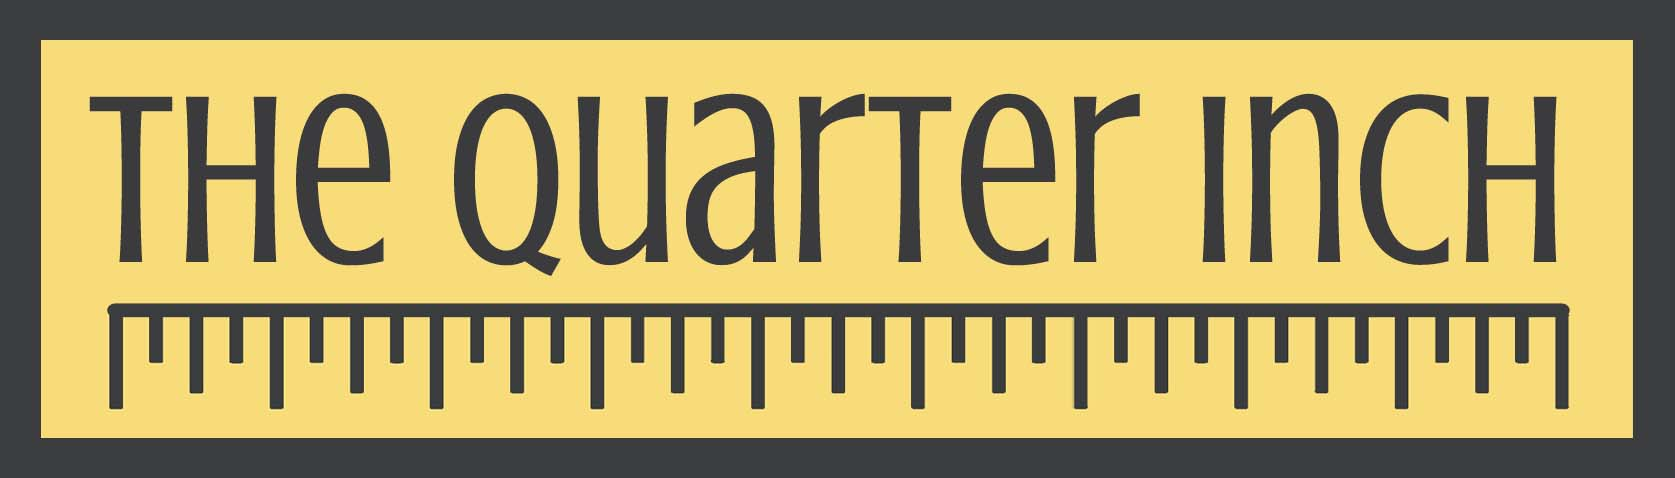 The Quarter Inch Logo.jpg